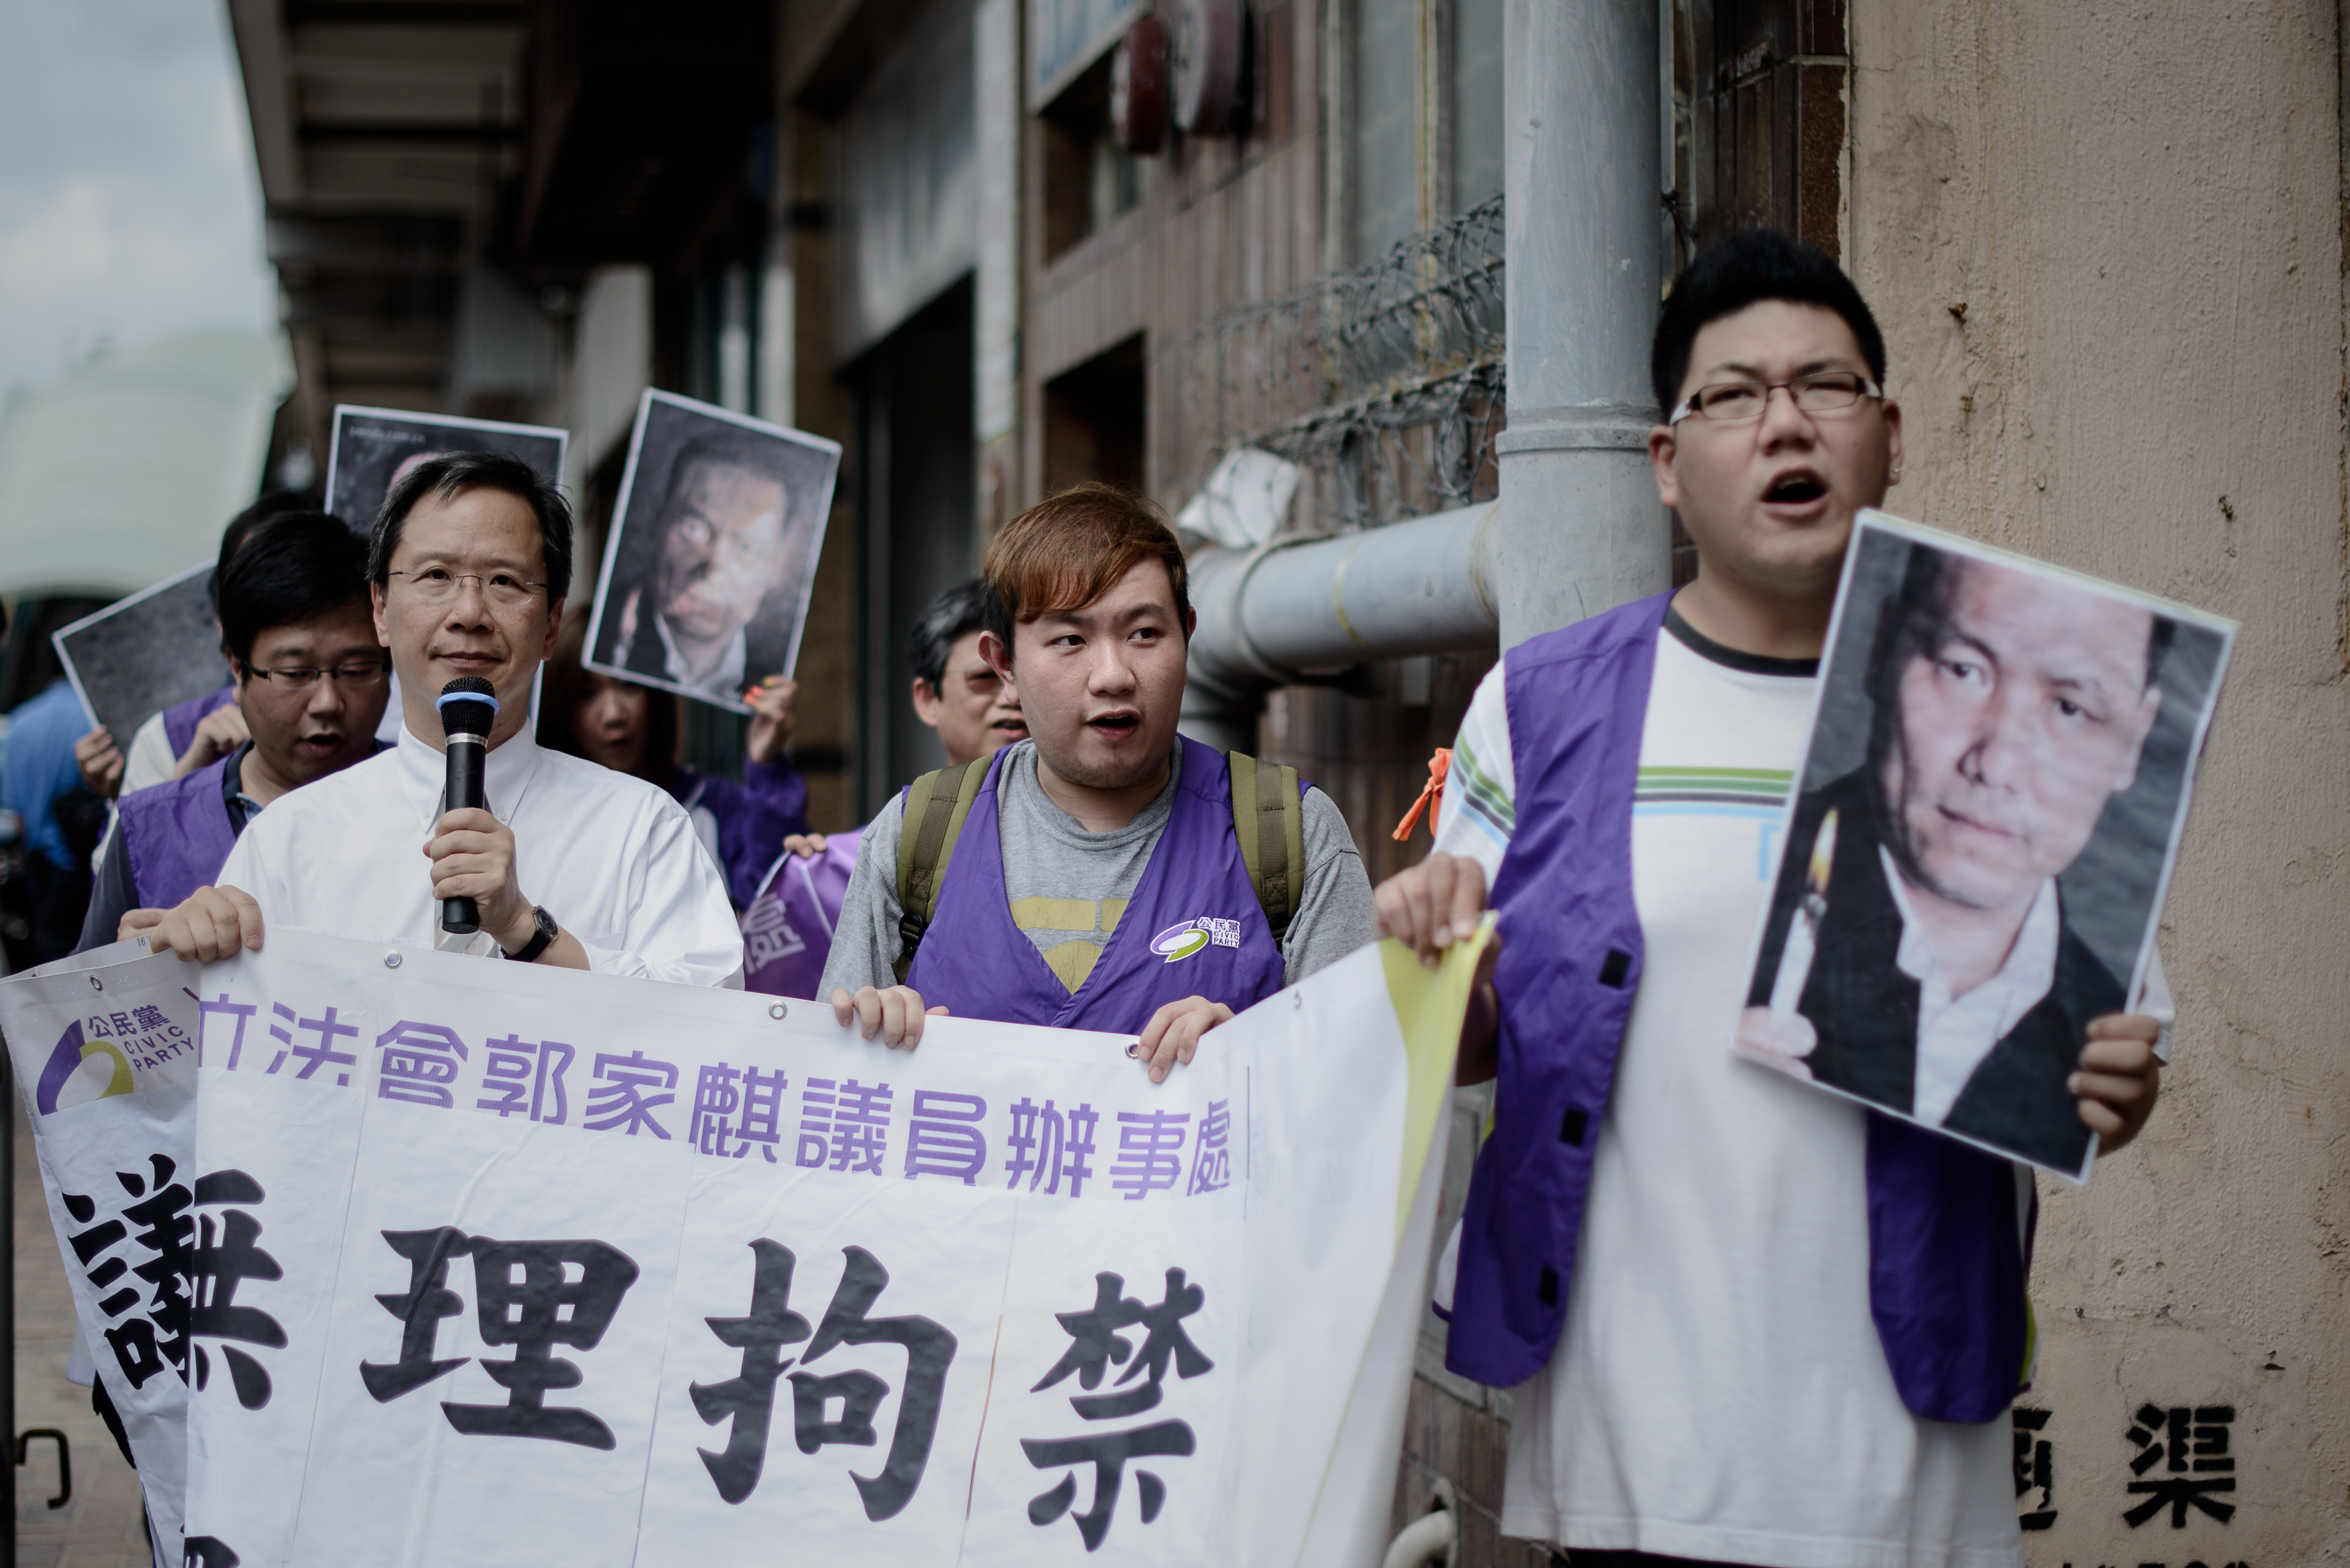 Protesters holding pictures of detained Chinese human-rights lawyer Pu Zhiqiang march to the Chinese Liaison Office in Hong Kong on May 14, 2014, asking for his release